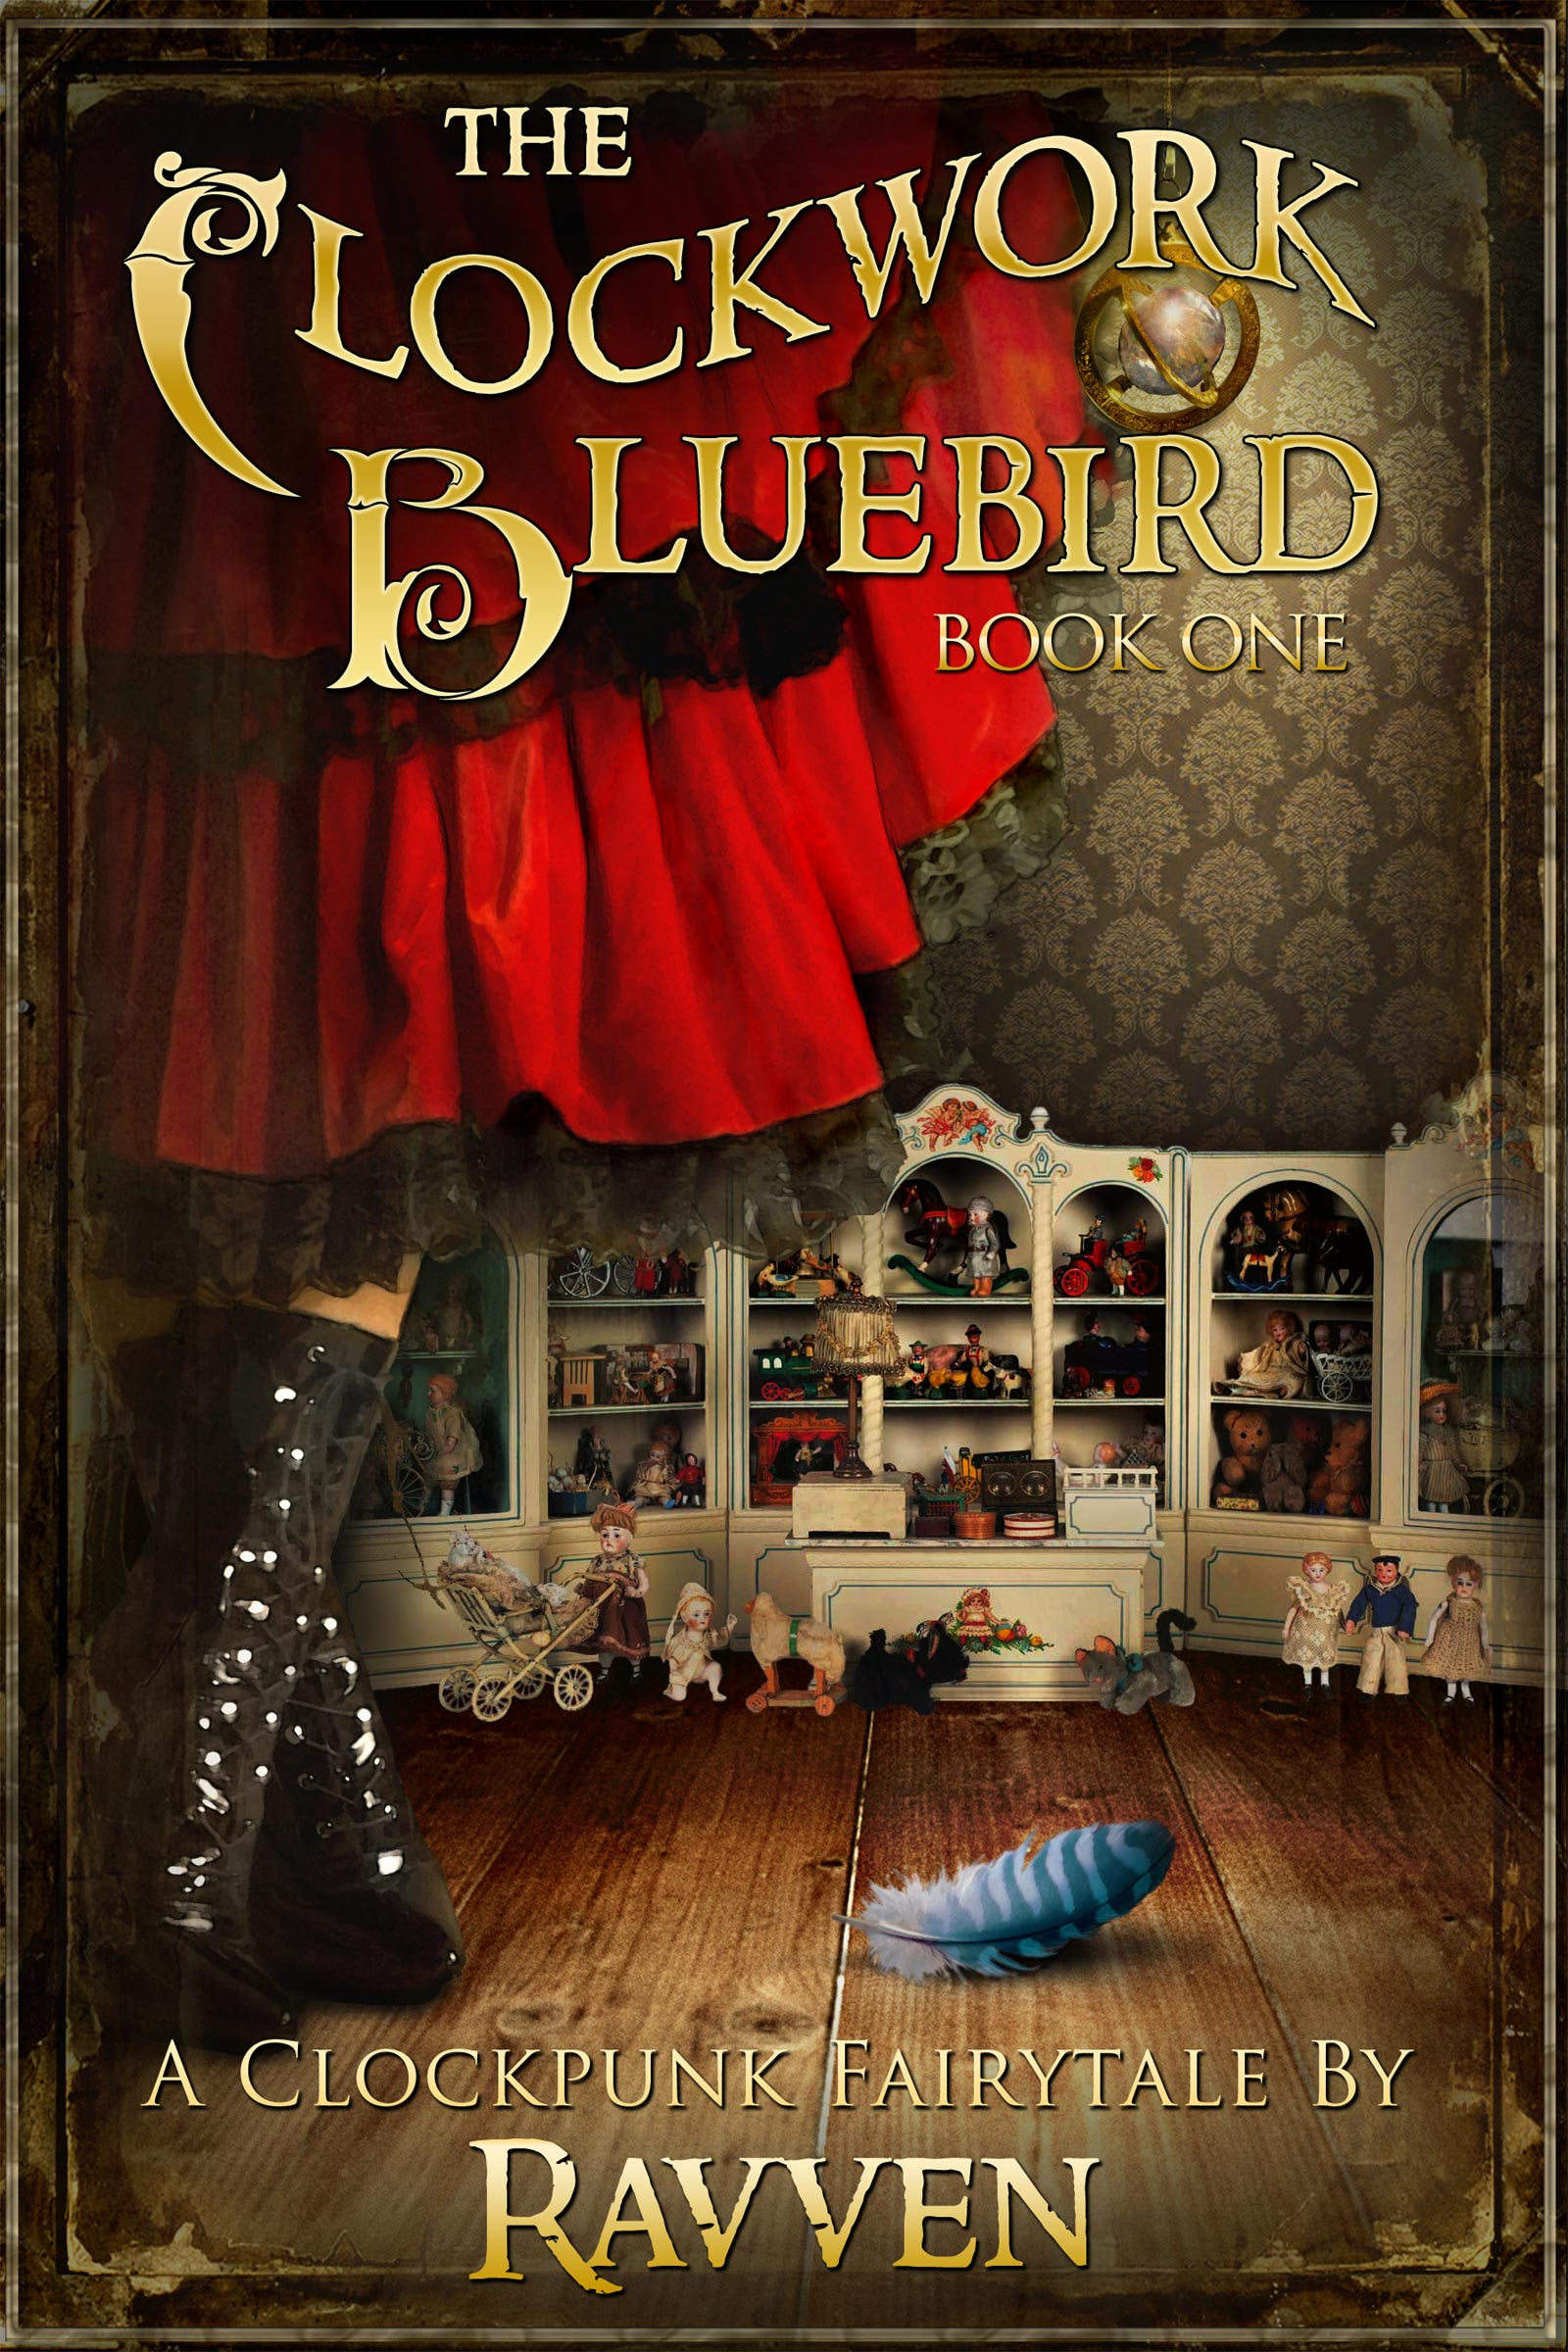 The Clockwork Bluebird